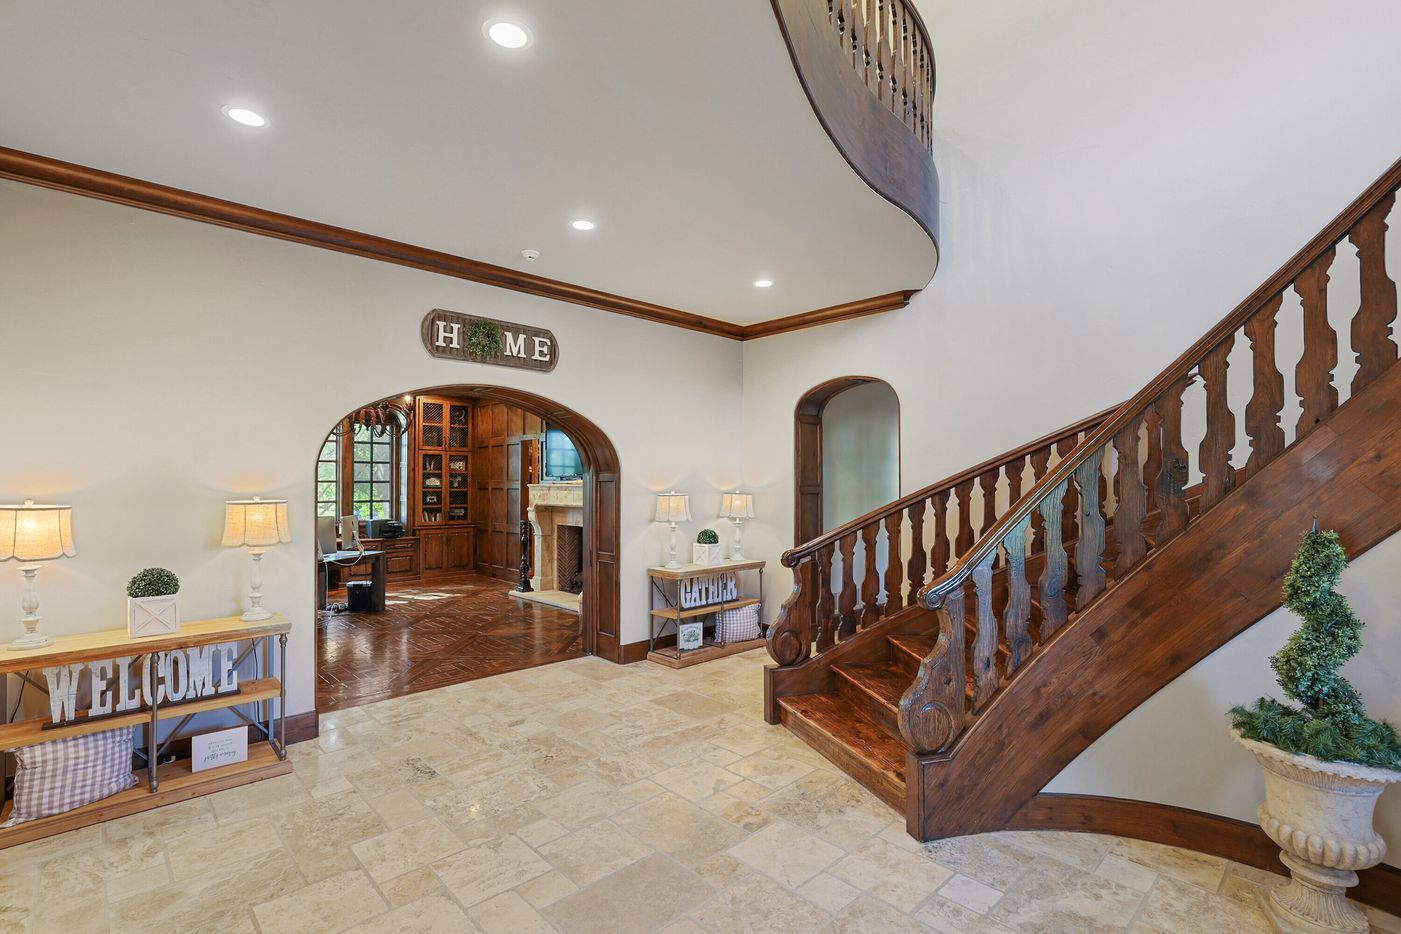 Take a look at the home at 2105 Bayshore Drive in Flower Mound.